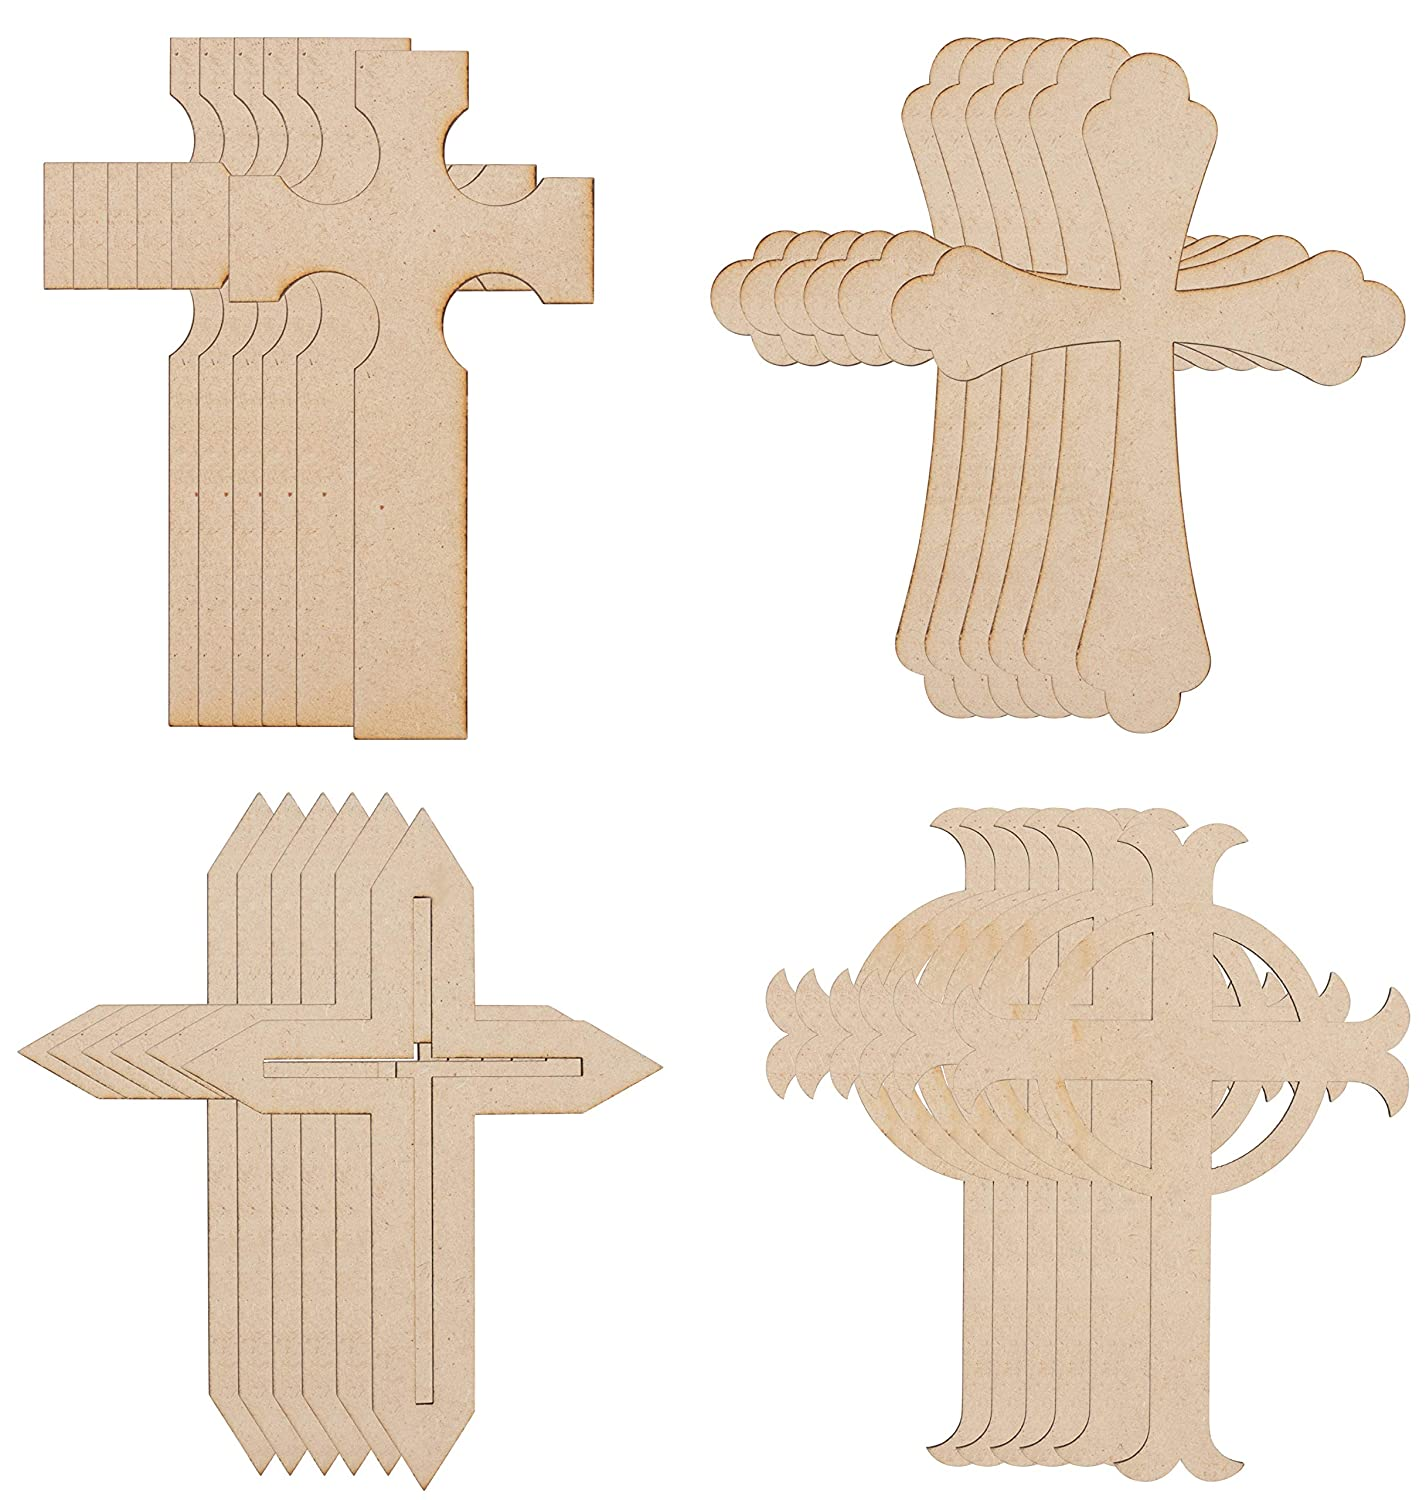 Wood Cutouts 24 Pack Cross Cutouts 4 Unfinished Wooden Cross Shapes For Diy Arts And Crafts Projects Decorations Ornaments 6 Of Each